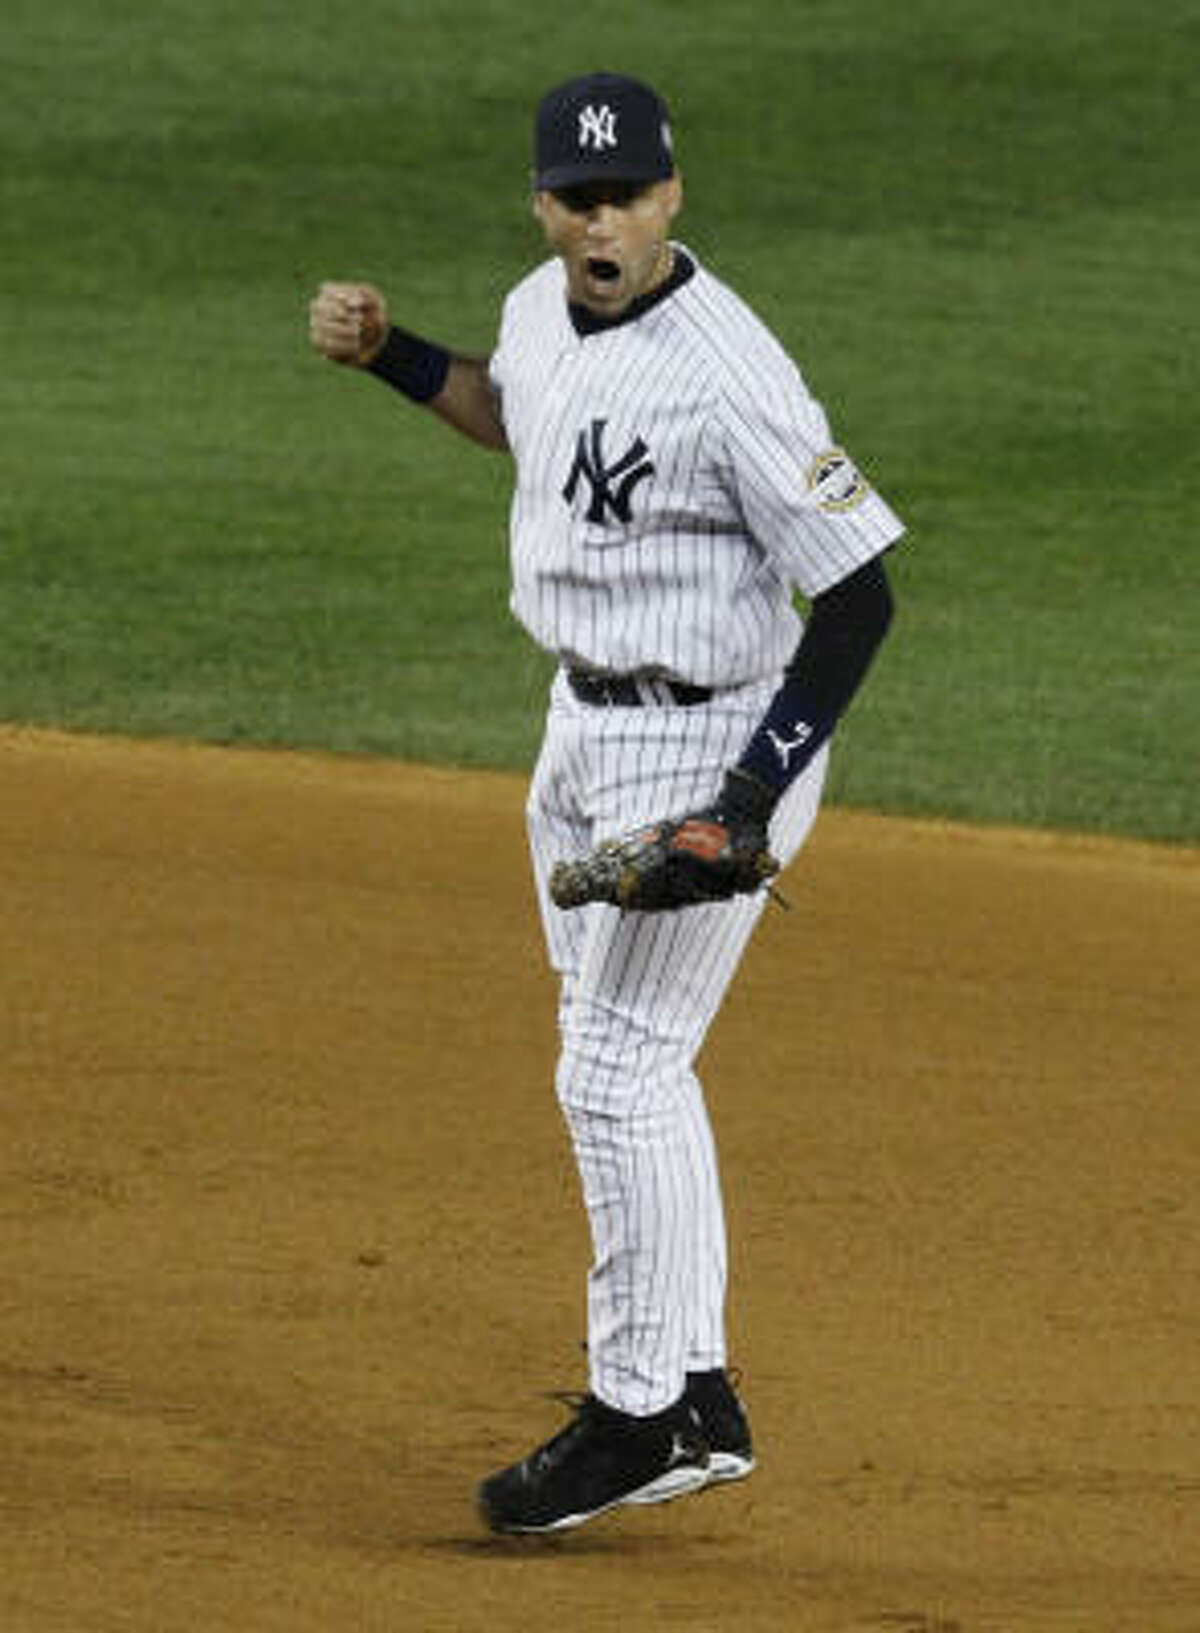 New York's Derek Jeter celebrates after an inning-ending double play in the eighth inning.